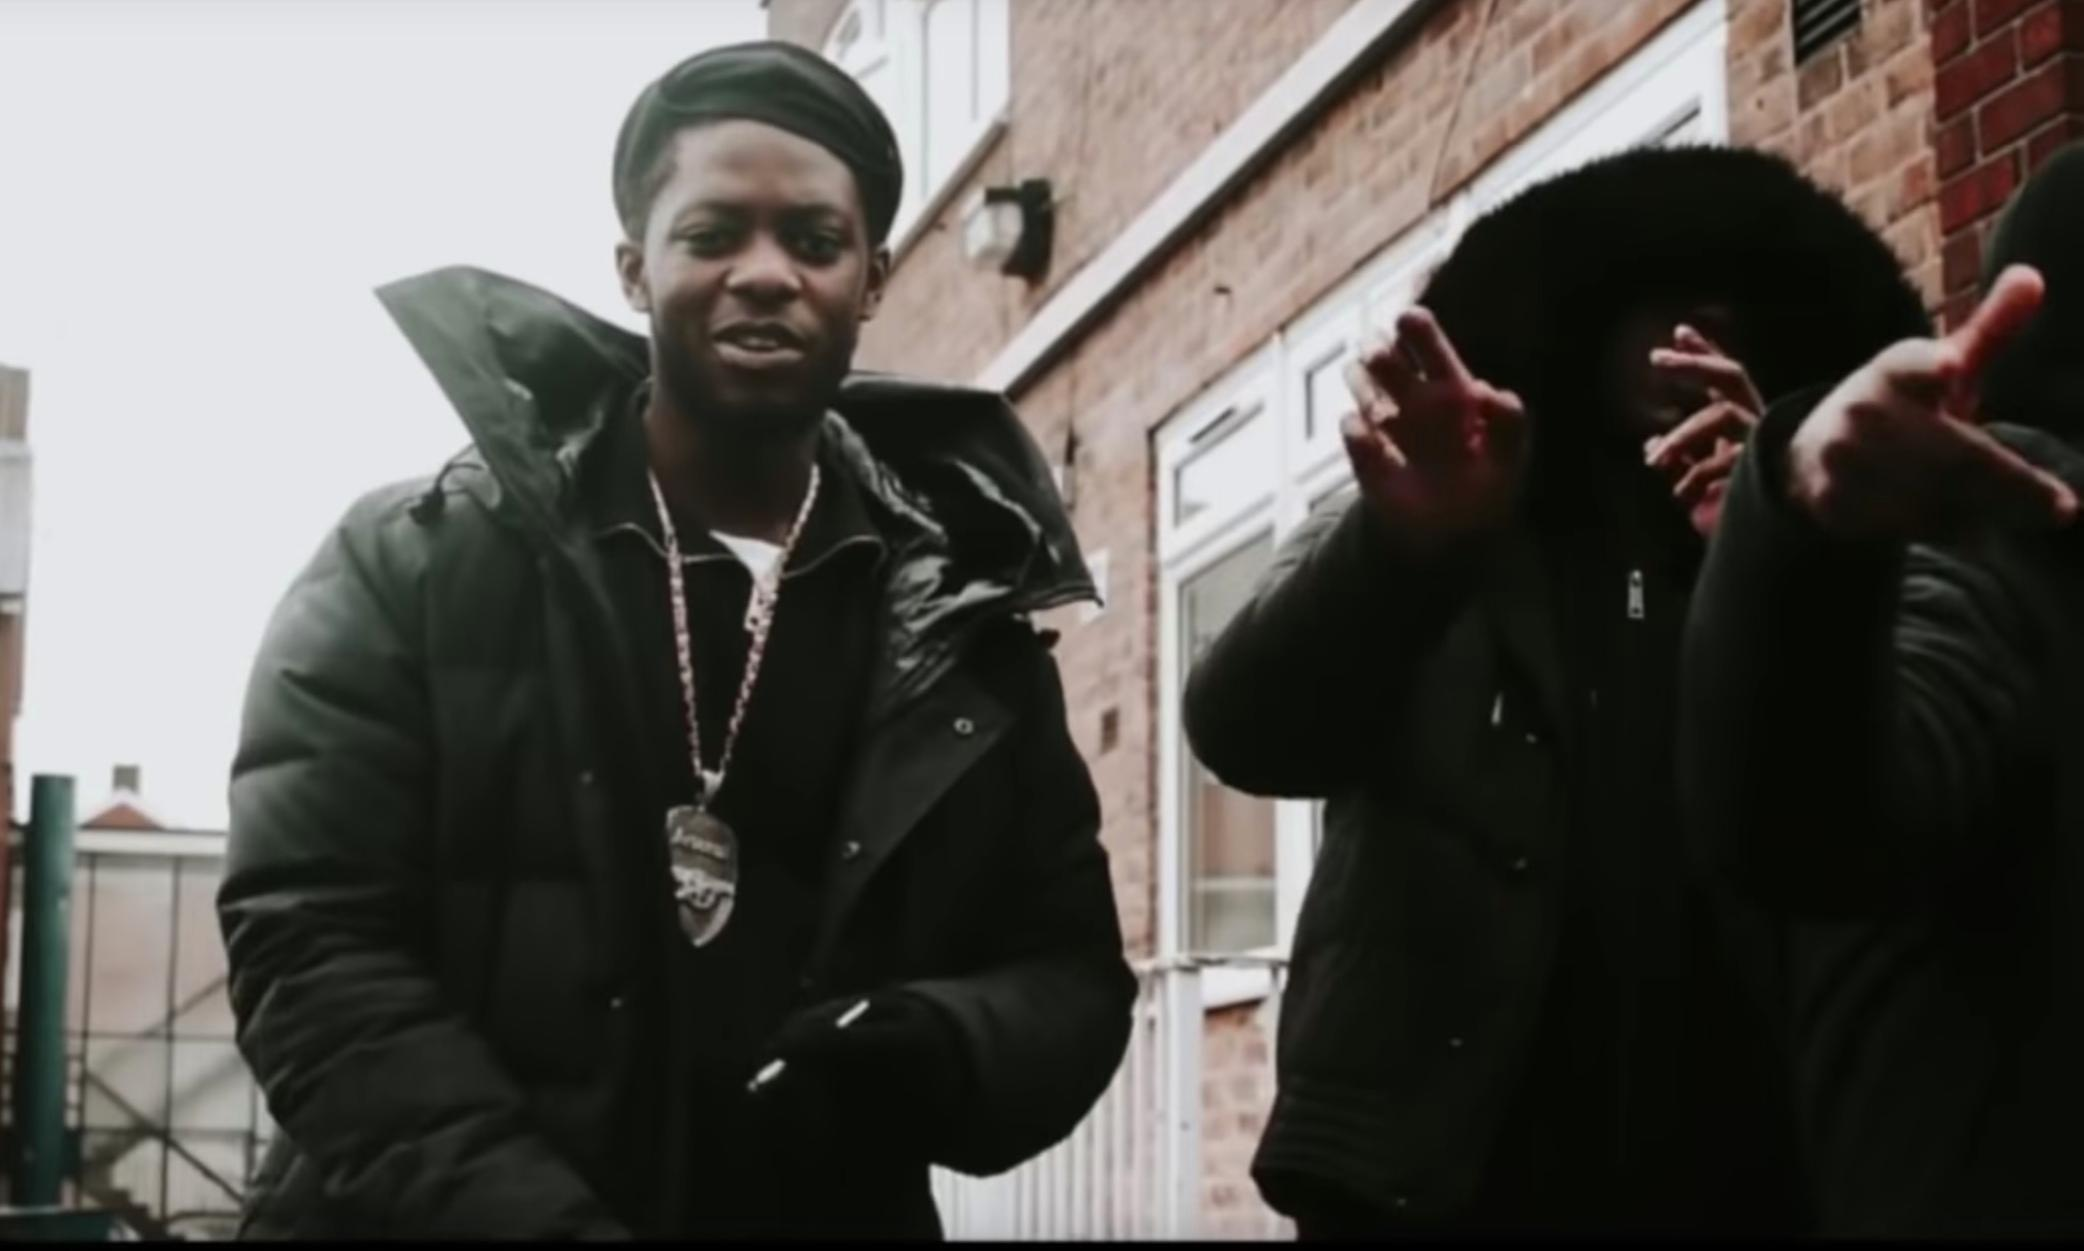 London drill rapper killed in knife attack admitted music's effect on crime